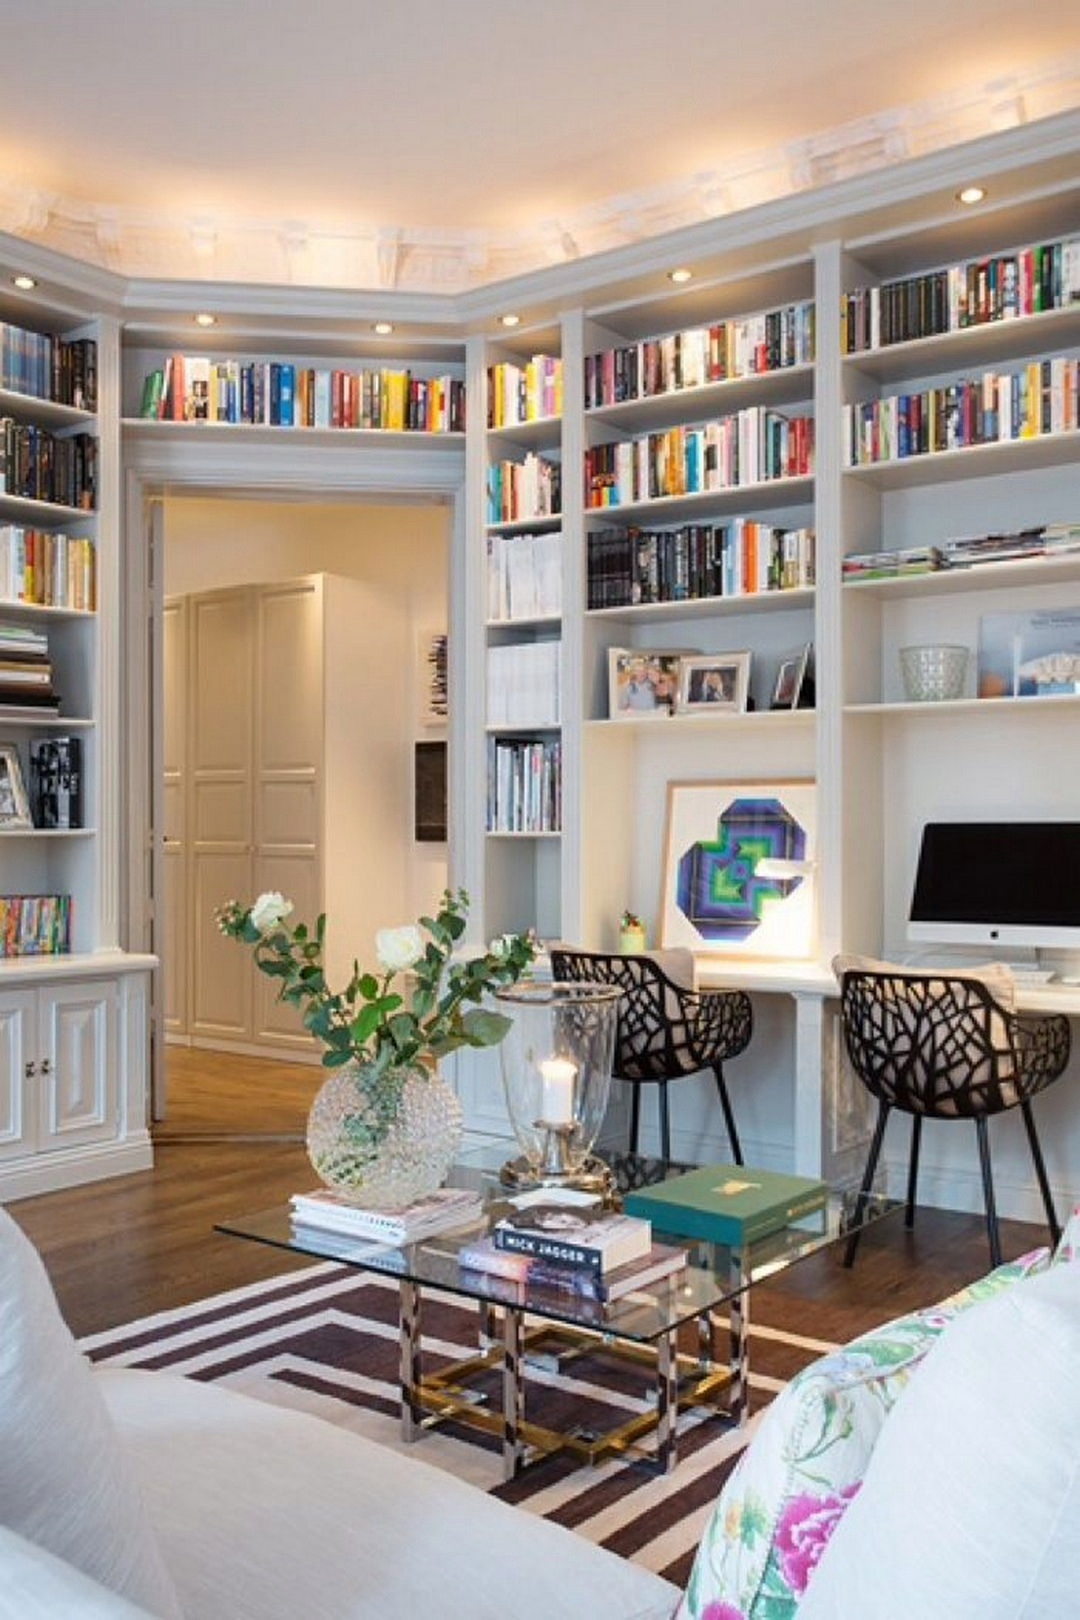 Home Library Room: JMC Zalla: A Single-Family Home With A Contemporary